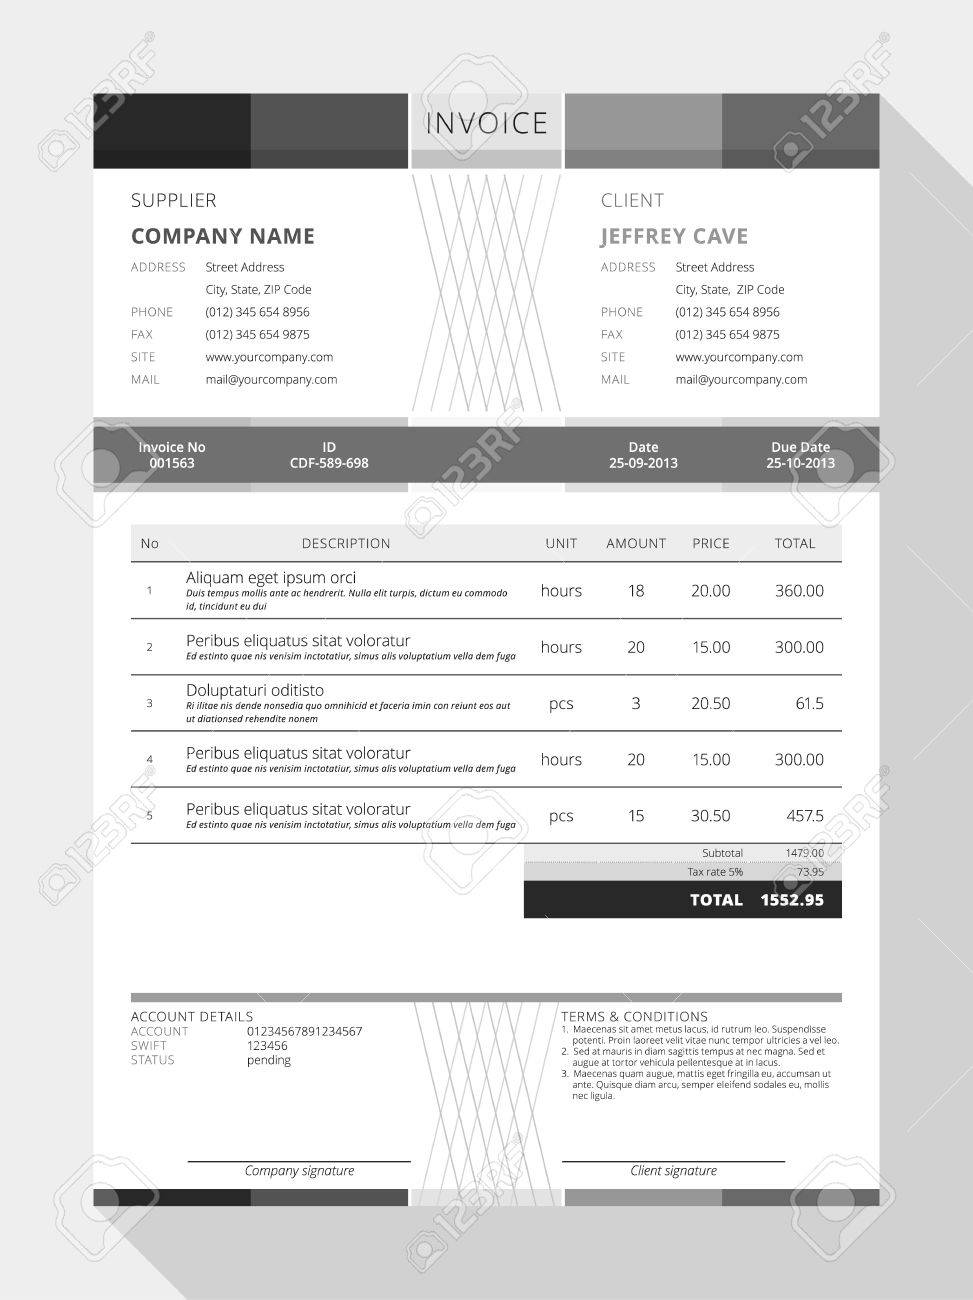 Imagerackus  Pretty Design An Invoice  Professional Graphic Design Invoice  With Remarkable Vector Customizable Invoice Form Template Design Vector   Design An Invoice With Extraordinary How To Pay An Invoice Also An Invoice In Addition Invoice Software For Small Business And Artist Invoice As Well As Paypal Send Invoice Fee Additionally Invoice Generator Mac From Happytomco With Imagerackus  Remarkable Design An Invoice  Professional Graphic Design Invoice  With Extraordinary Vector Customizable Invoice Form Template Design Vector   Design An Invoice And Pretty How To Pay An Invoice Also An Invoice In Addition Invoice Software For Small Business From Happytomco